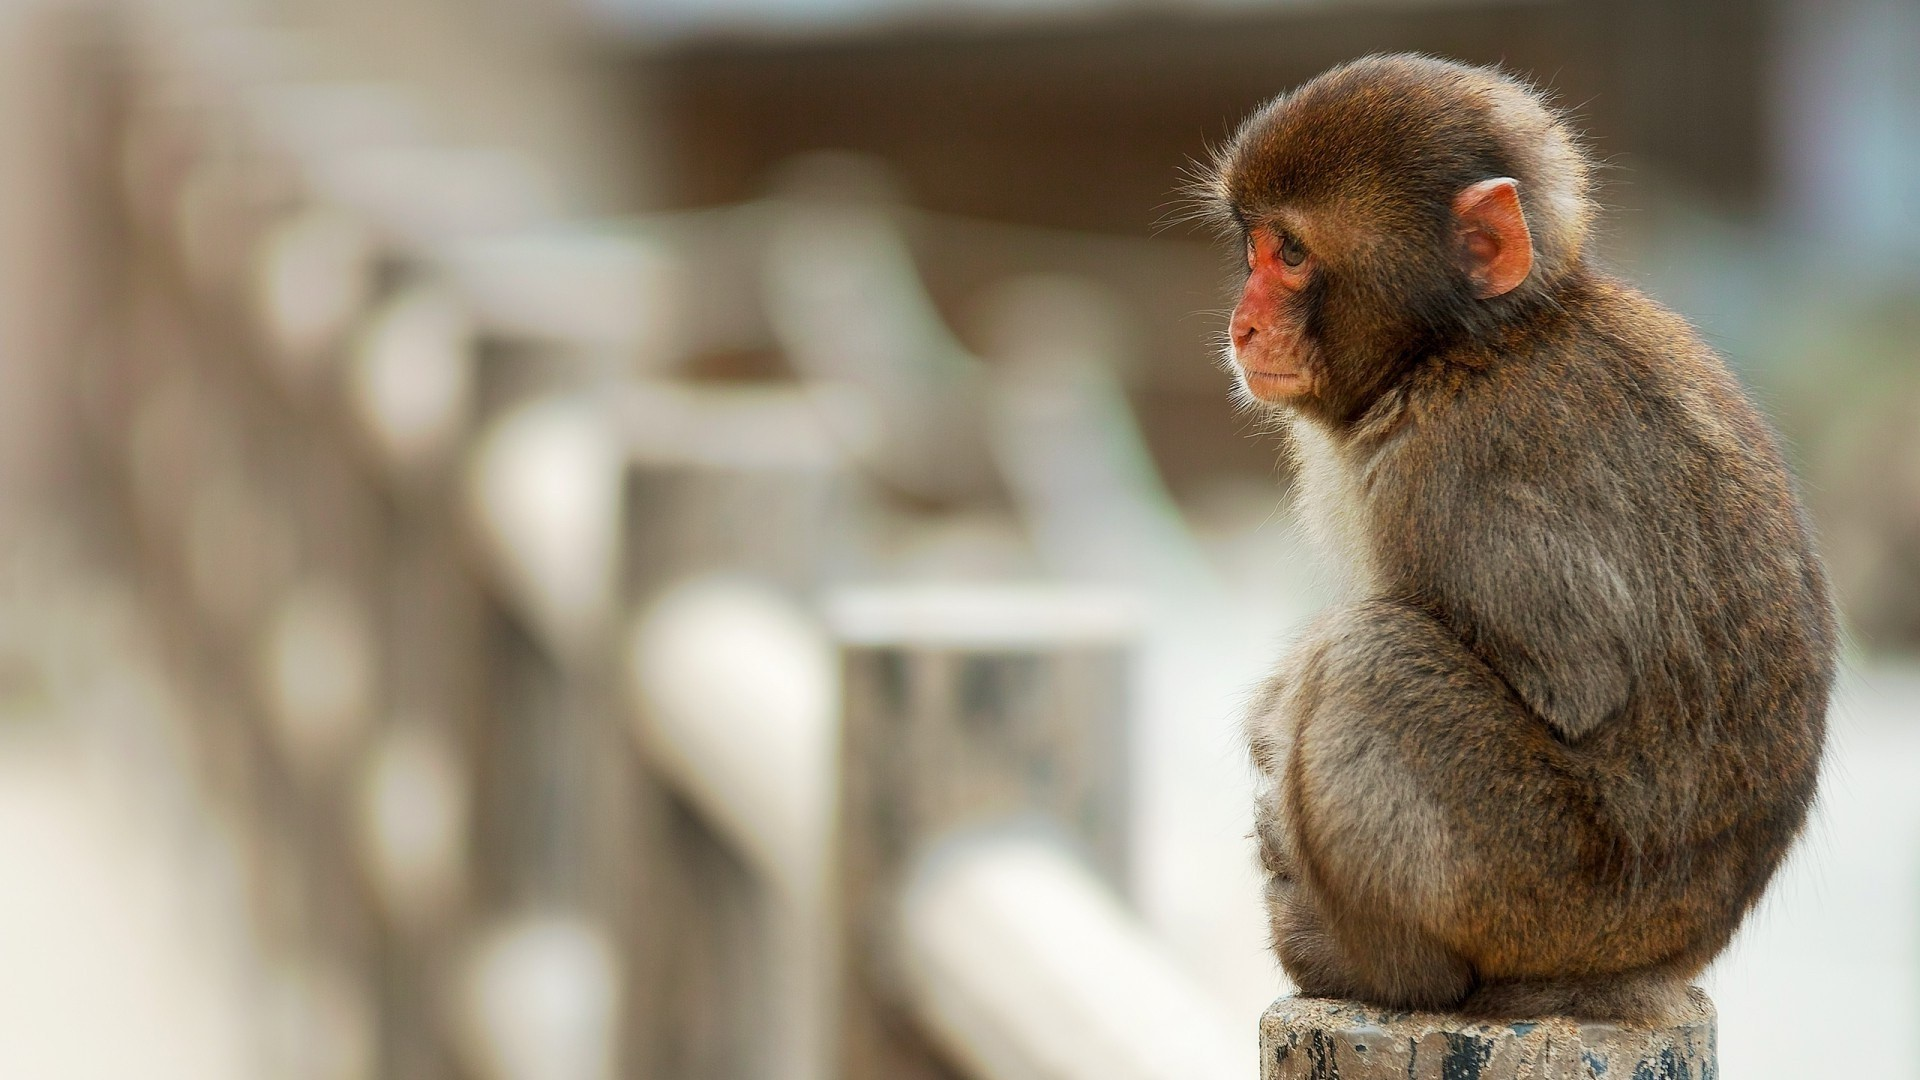 1920x1080 undefined Monkey Wallpaper (46 Wallpapers) | Adorable Wallpapers